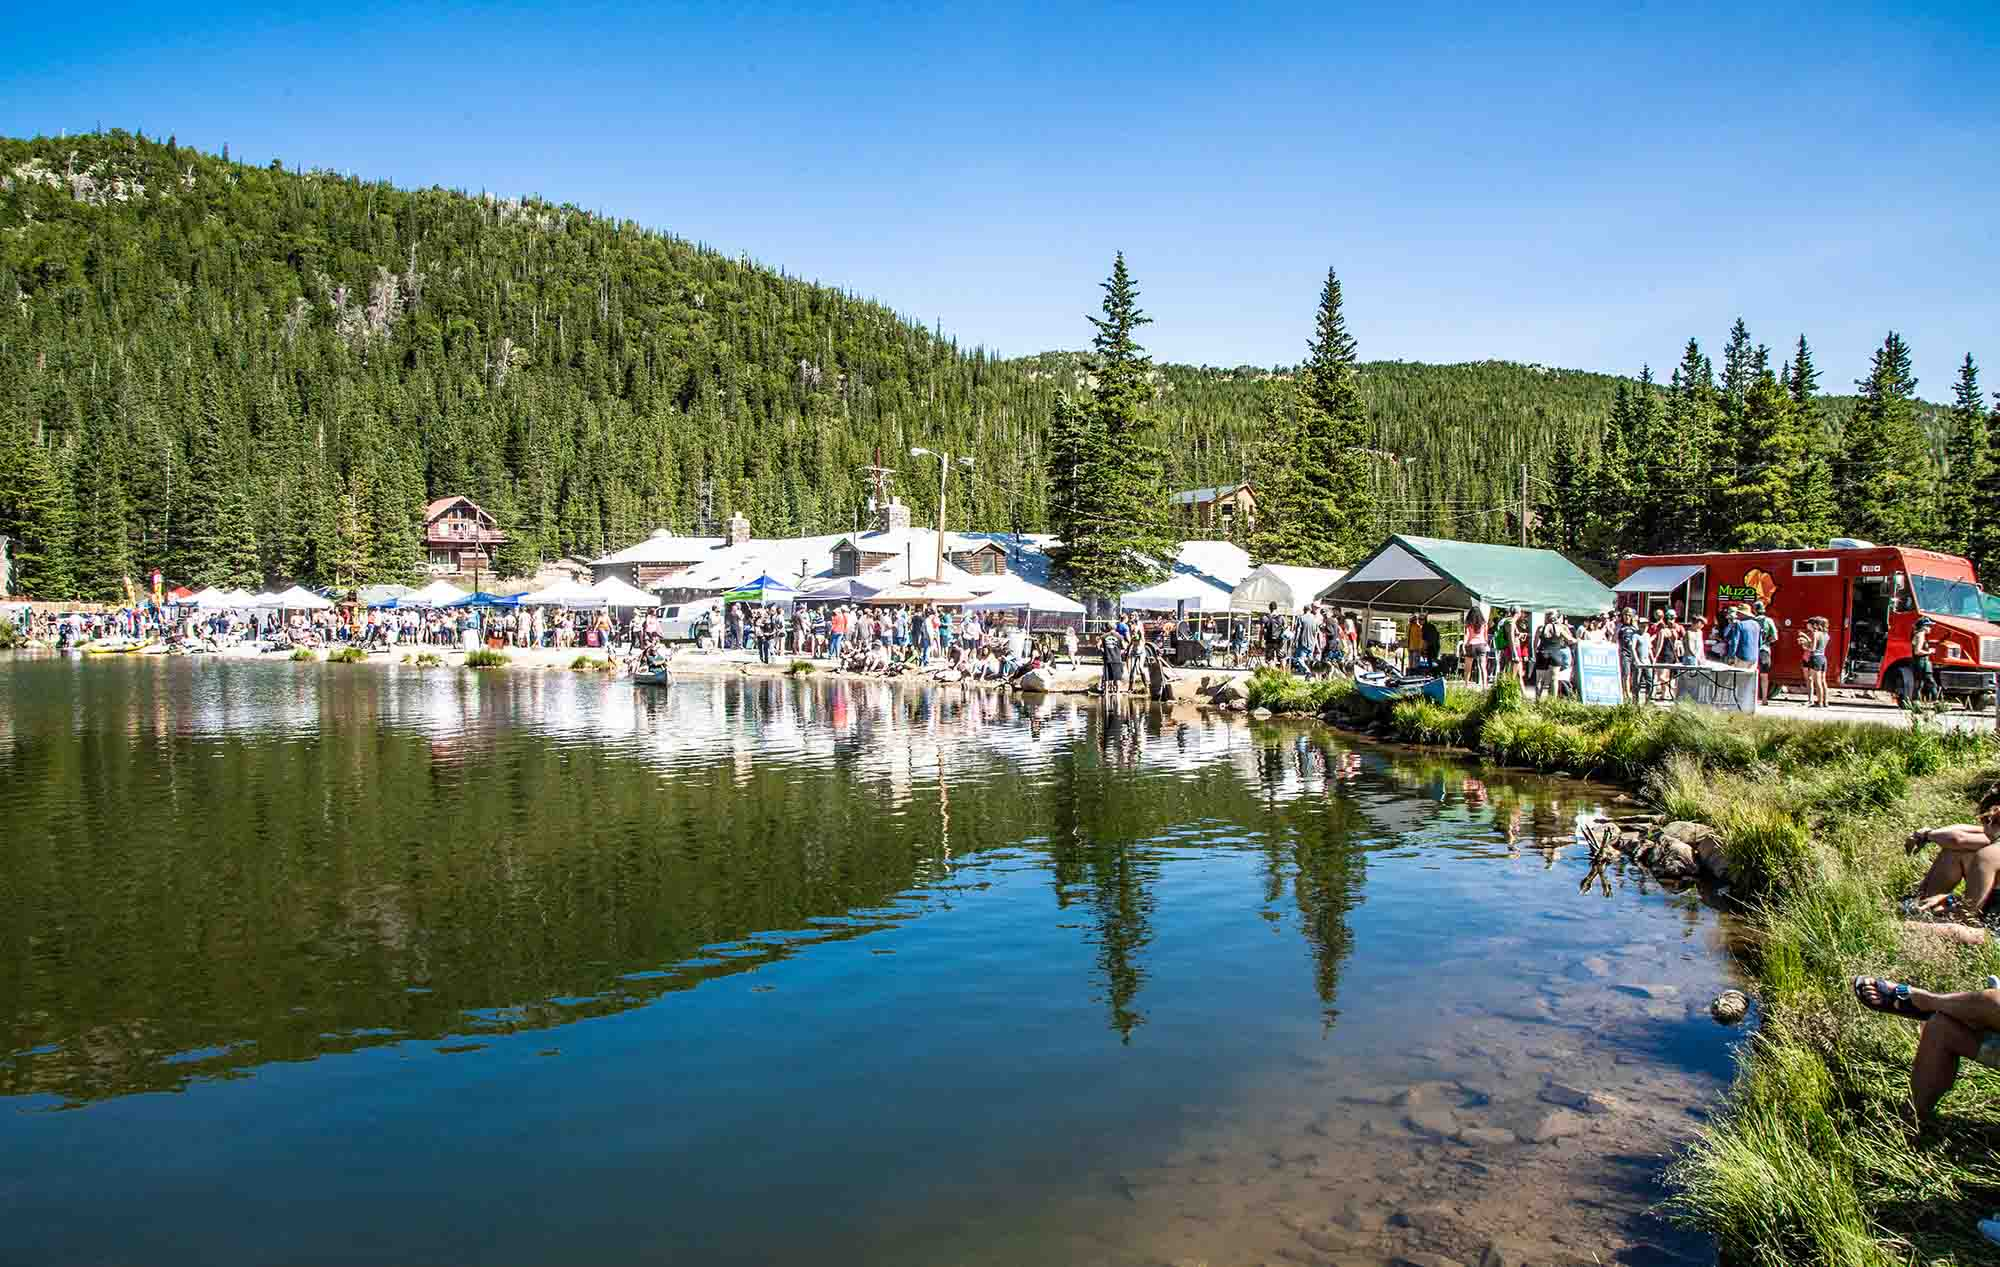 Glacier Fest at St. Mary's Glacier in Idaho Springs, Colorado